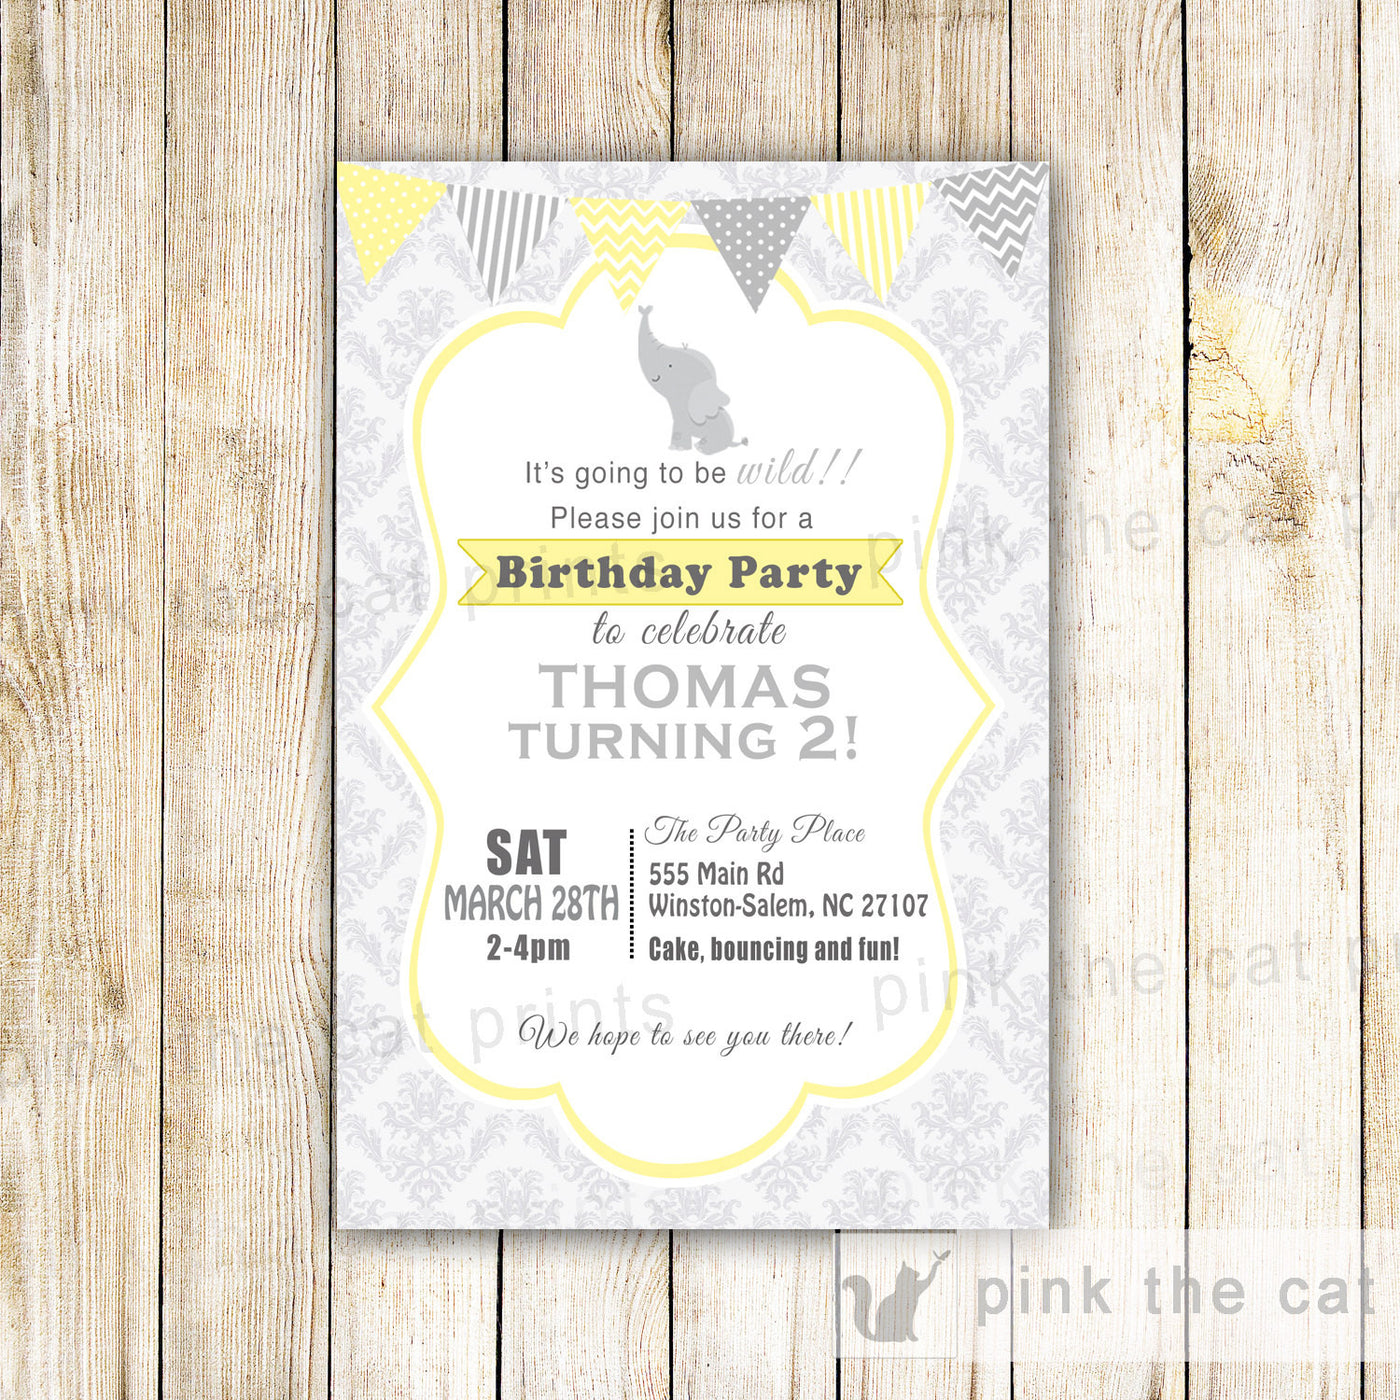 Elephant Invitation Boy Birthday Party Yellow Grey Pink The Cat